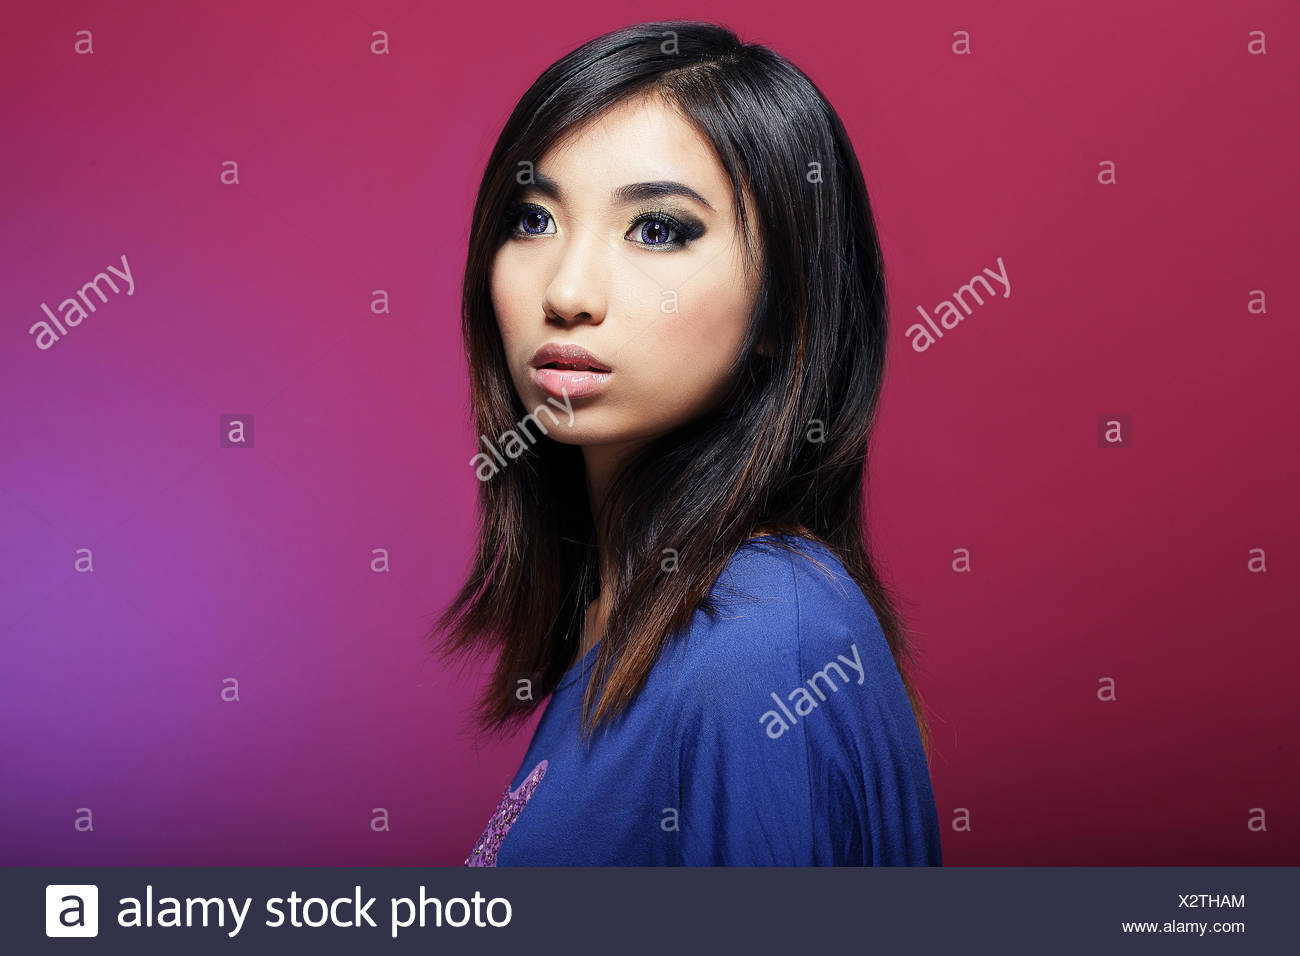 Woman Profile Blue Beautiful Beauteously Nice Big Large Enormous Stock Photo Alamy